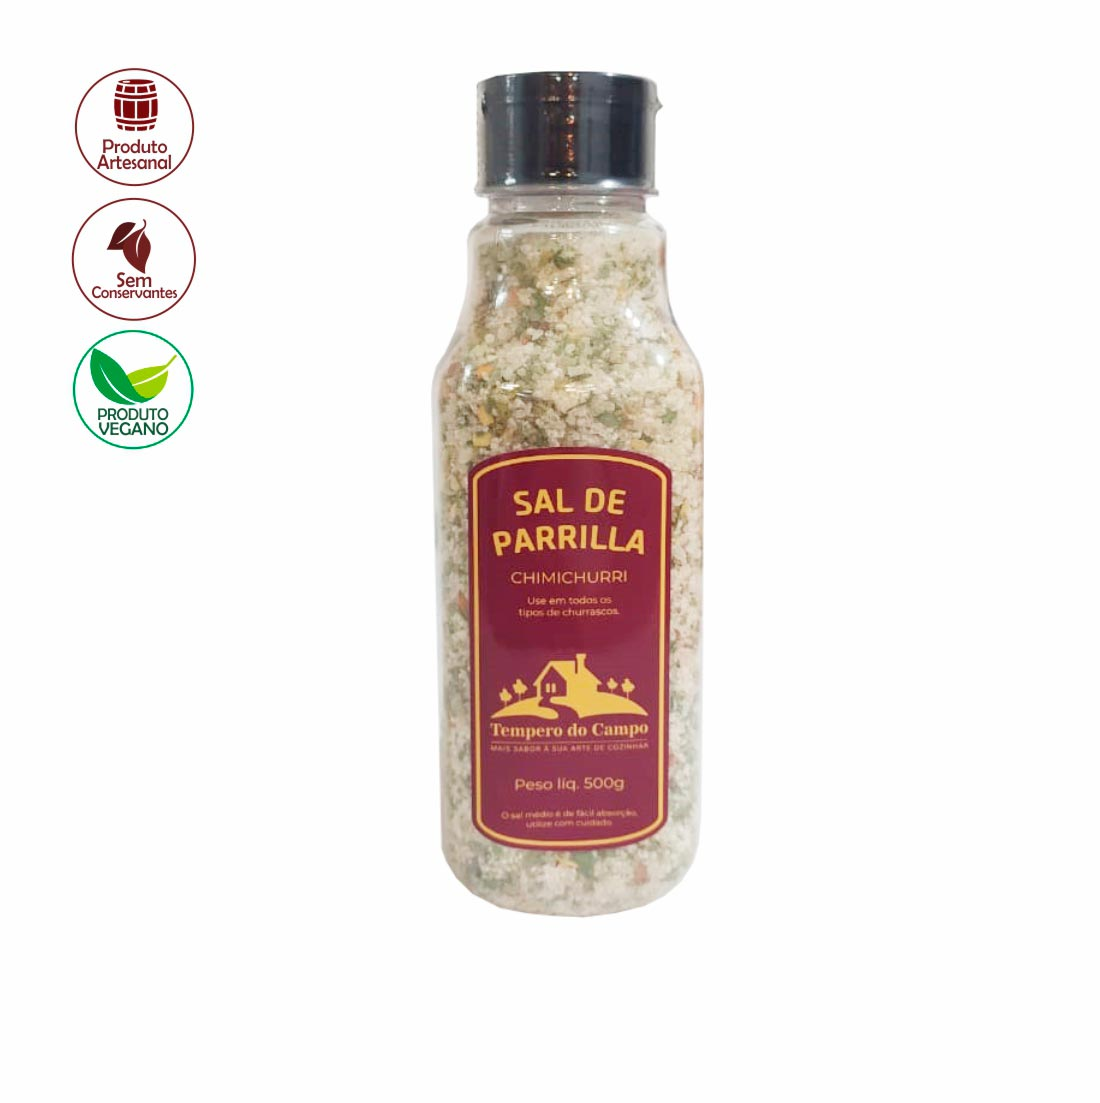 SAL DE PARRILLA COM CHIMICHURRI TEMPERO DO CAMPO 500G